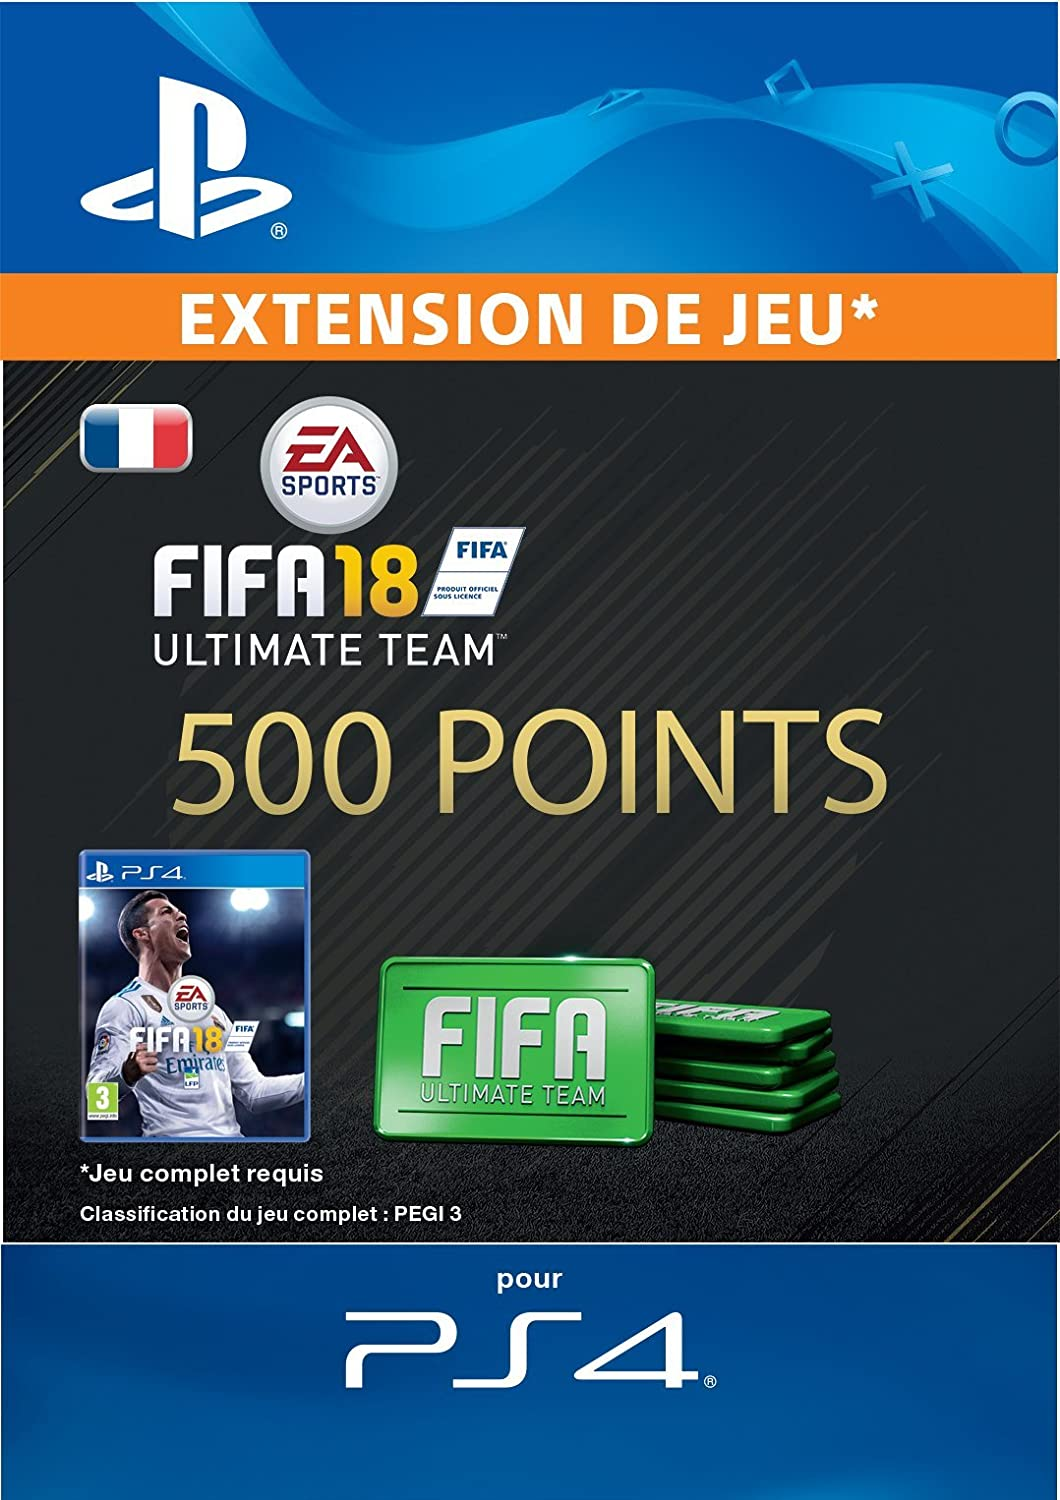 Fifa 18 ultimate team 1600 points fifa code jeu ps4 compte fifa 18 ultimate team 500 points fifa code jeu ps4 compte franais fandeluxe Images